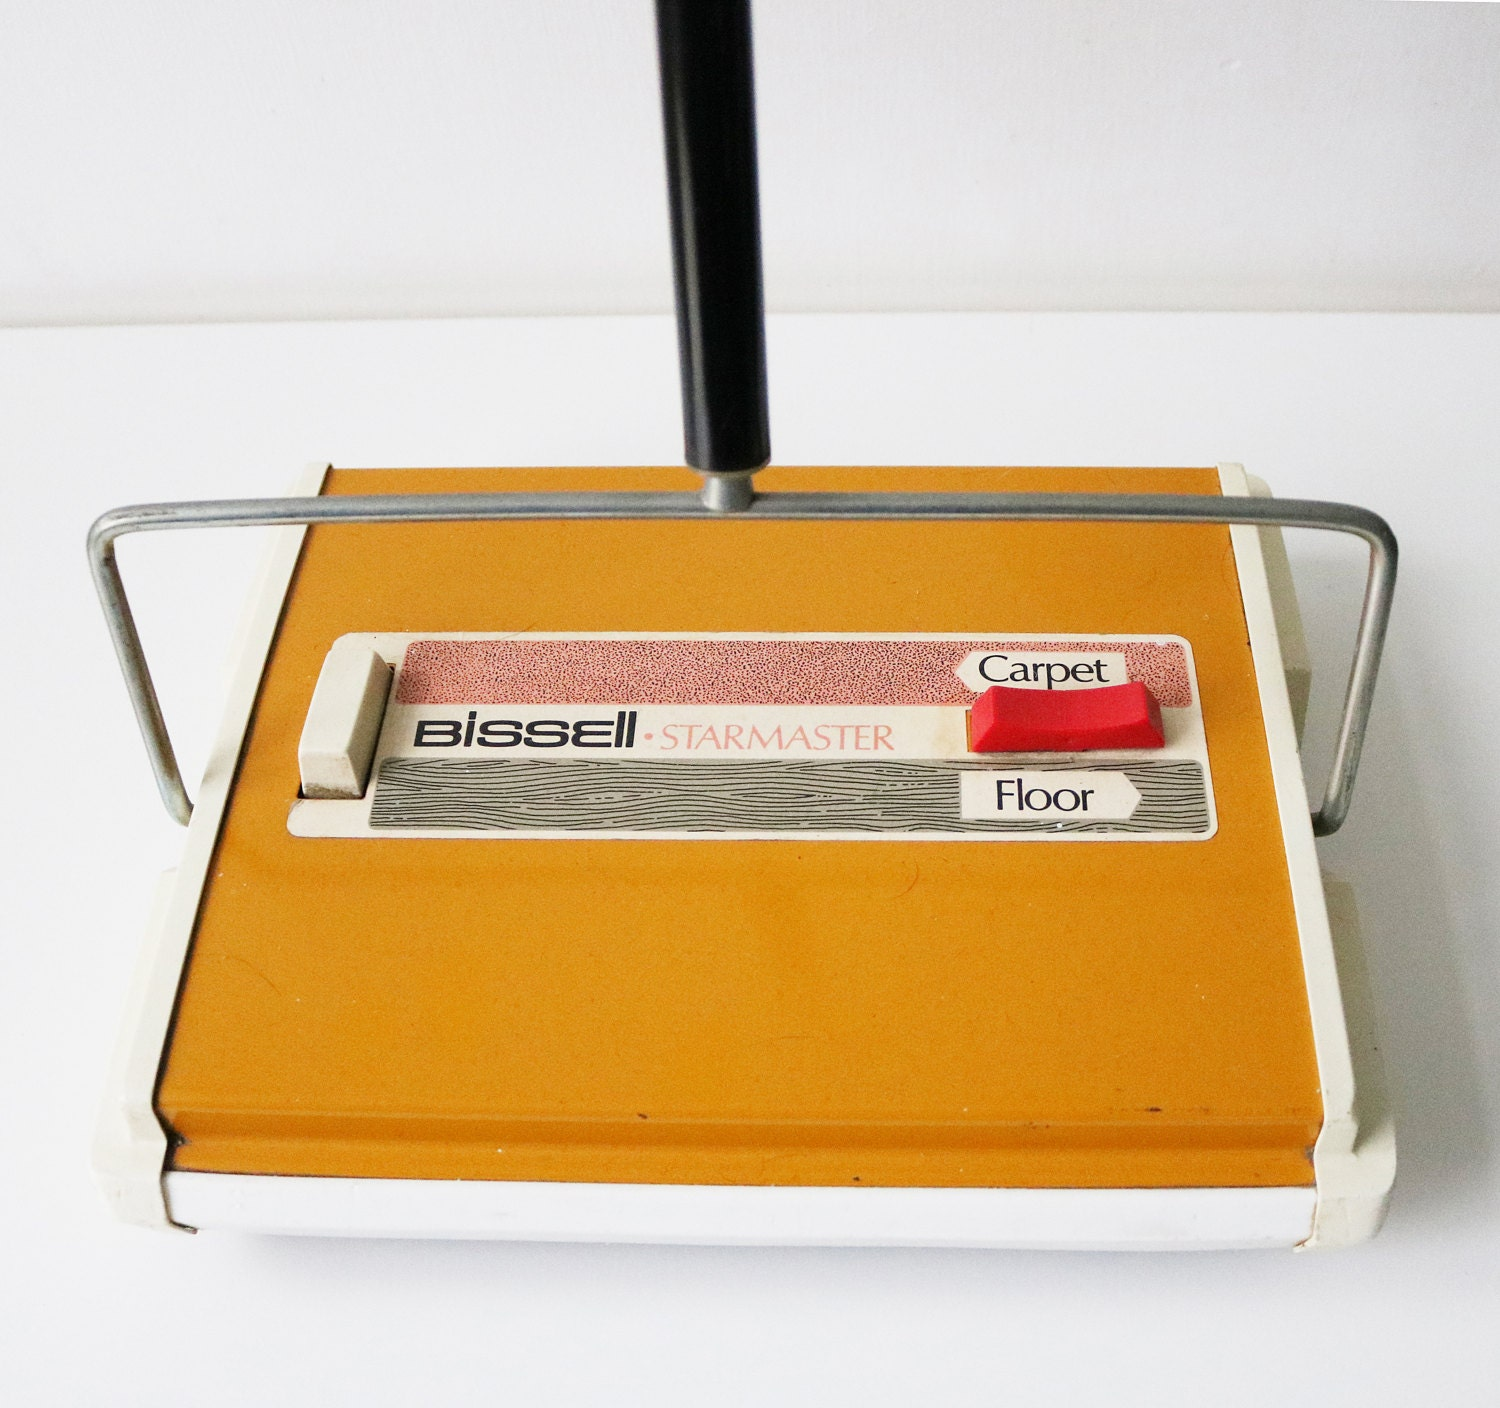 vintage bissell carpet sweeper mid century. Black Bedroom Furniture Sets. Home Design Ideas